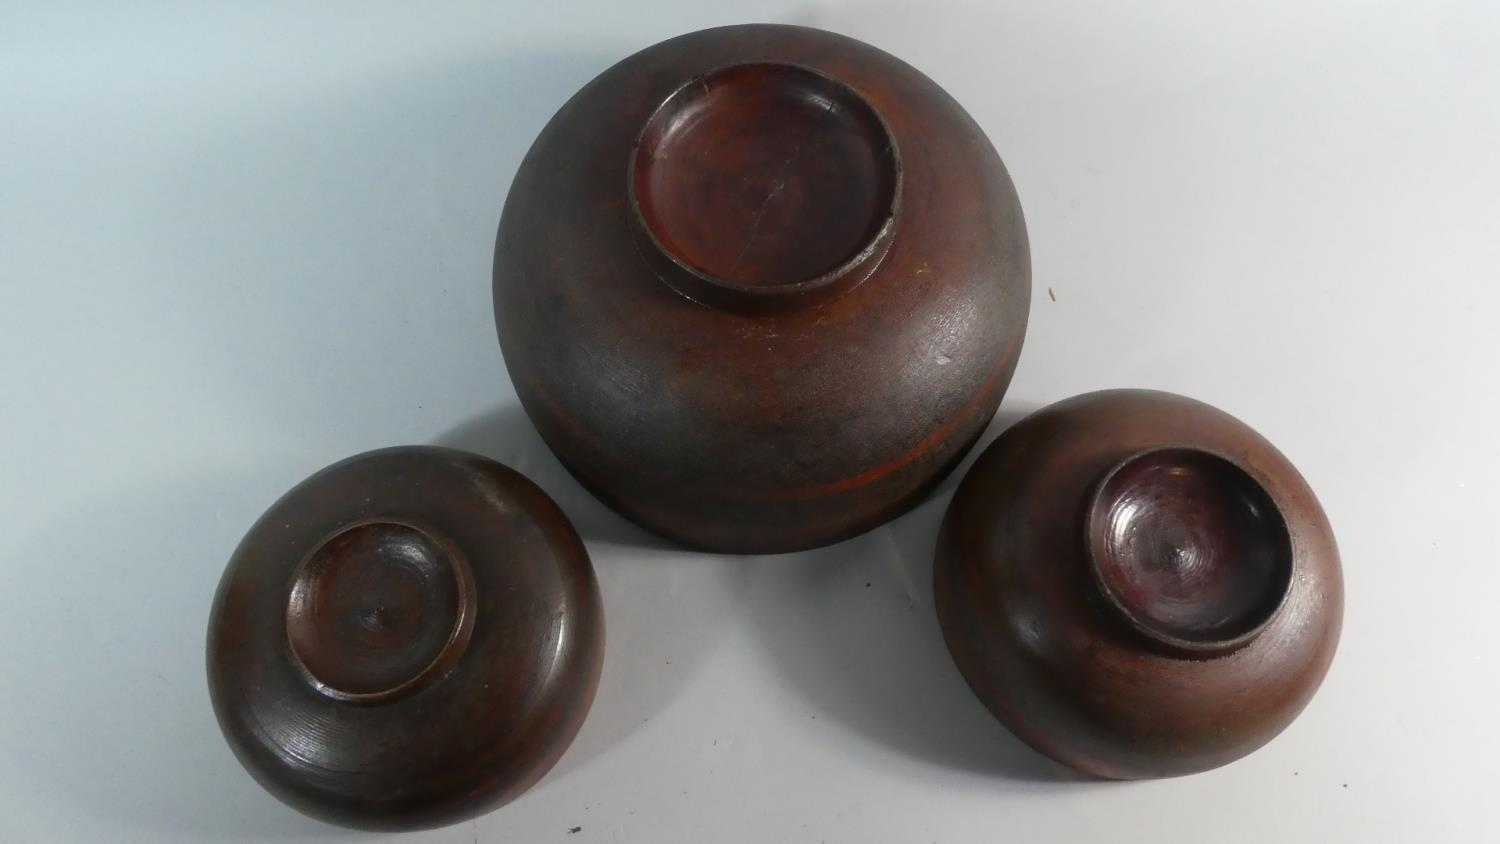 A Collection of Three Early 20th Century Indonesian Wooden Bowls with Original Polychrome Painted - Image 4 of 5